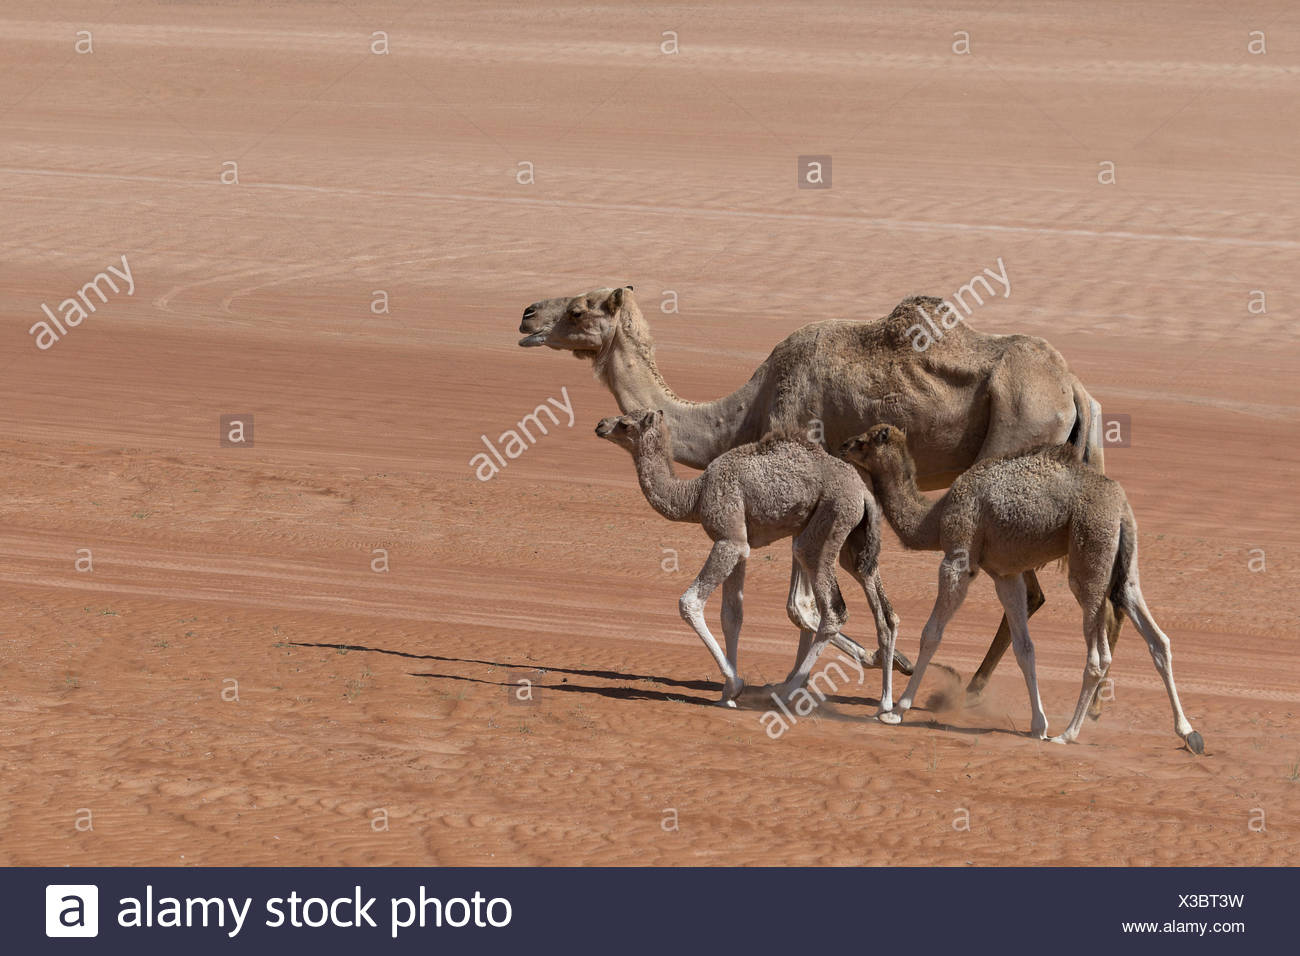 Dromedary (Camelus dromedarius), with young animals, in the desert, Wahiba Sands, Oman Stock Photo